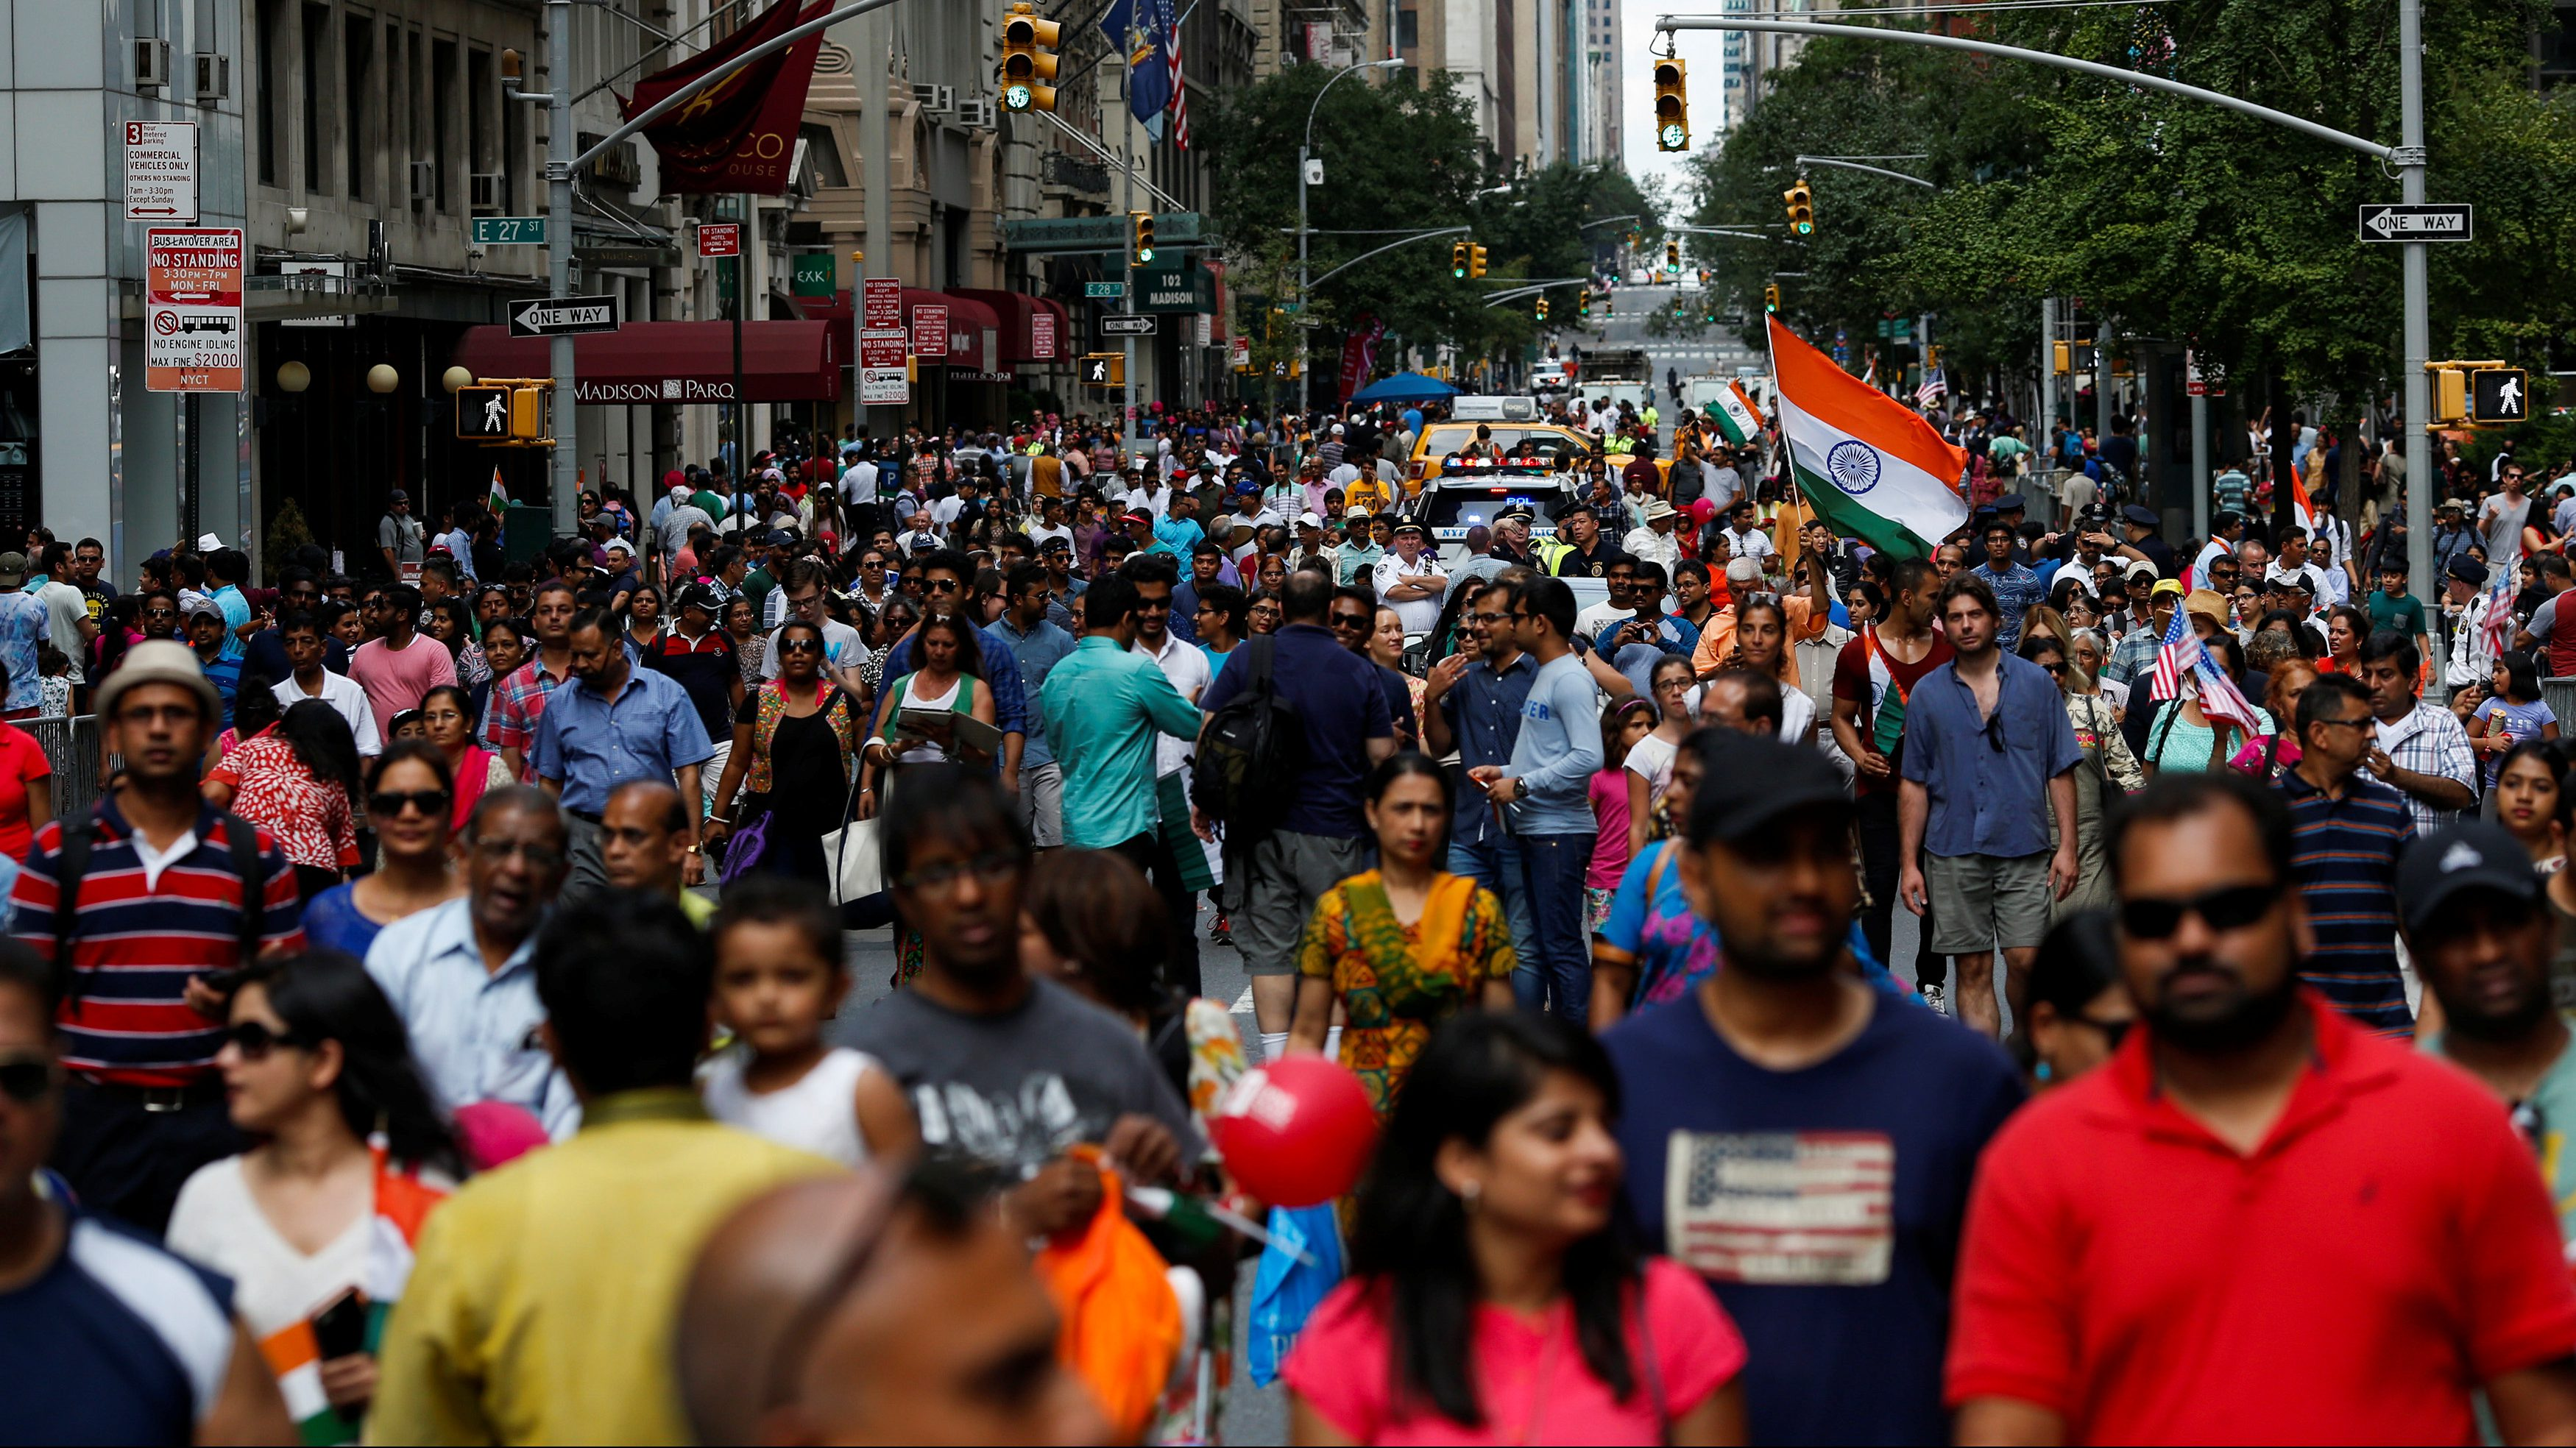 People take part in the annual India Day Parade in Manhattan, New York, U.S., August 21, 2016.